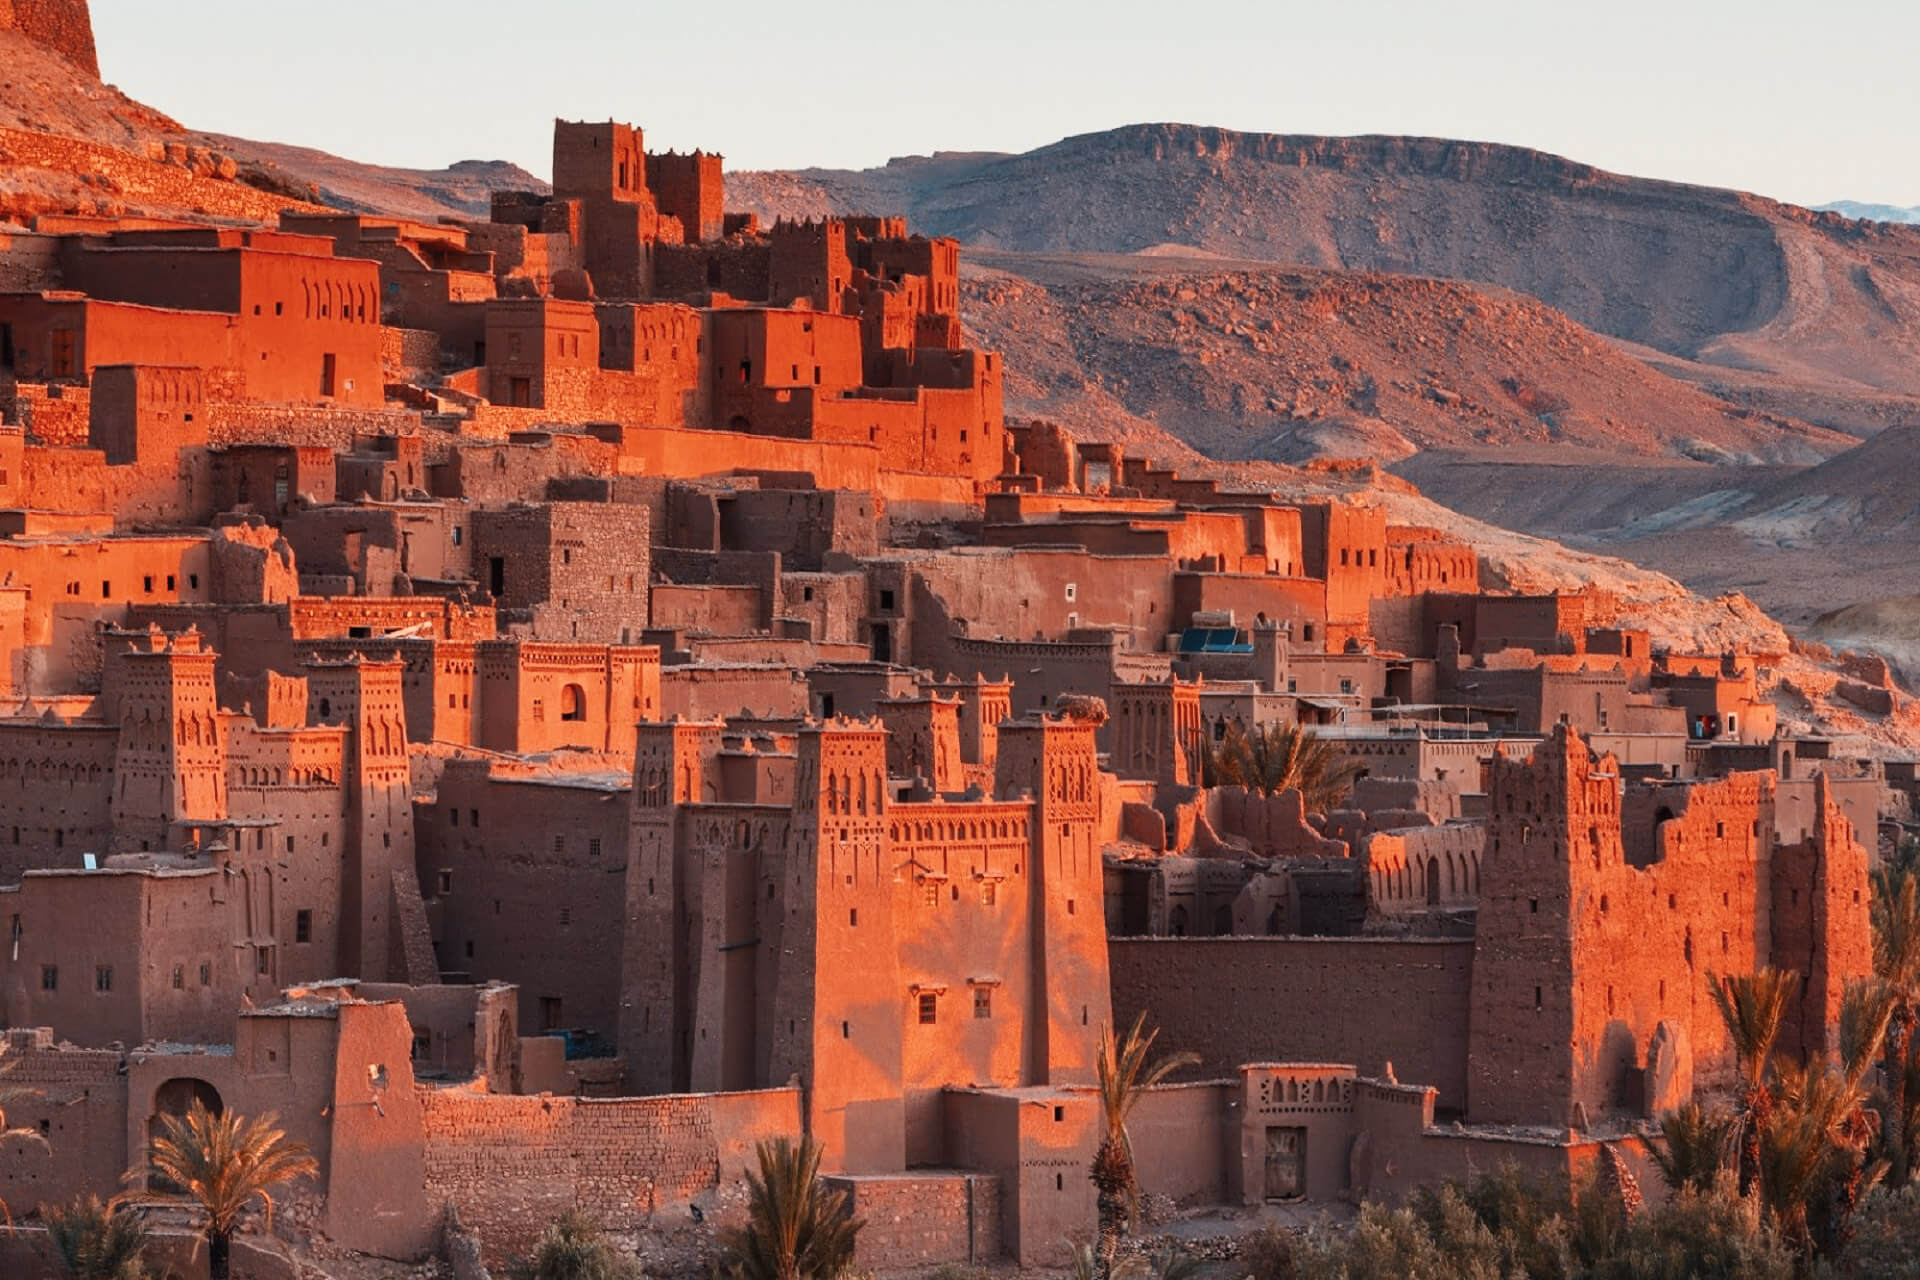 AIT BEN HADDOU - The City Of Of Mud And Straw